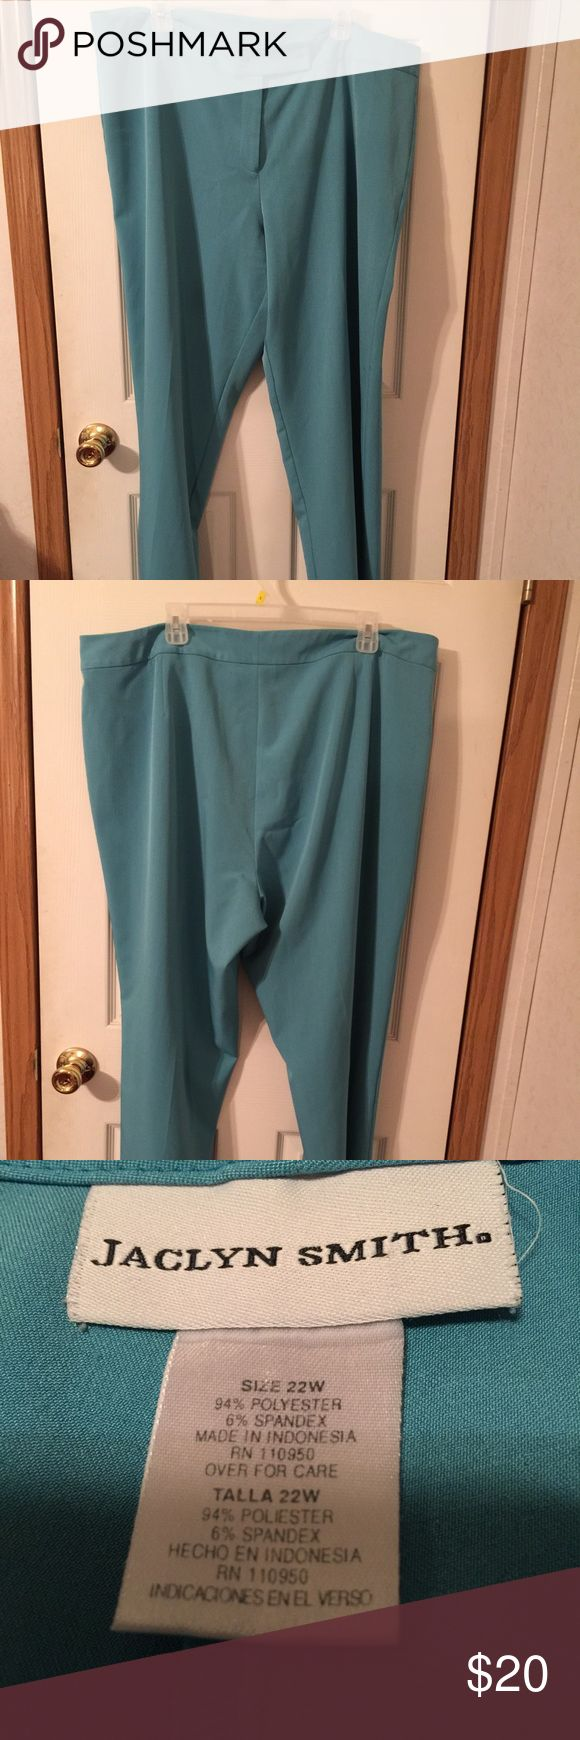 1000+ ideas about Turquoise Pants on Pinterest